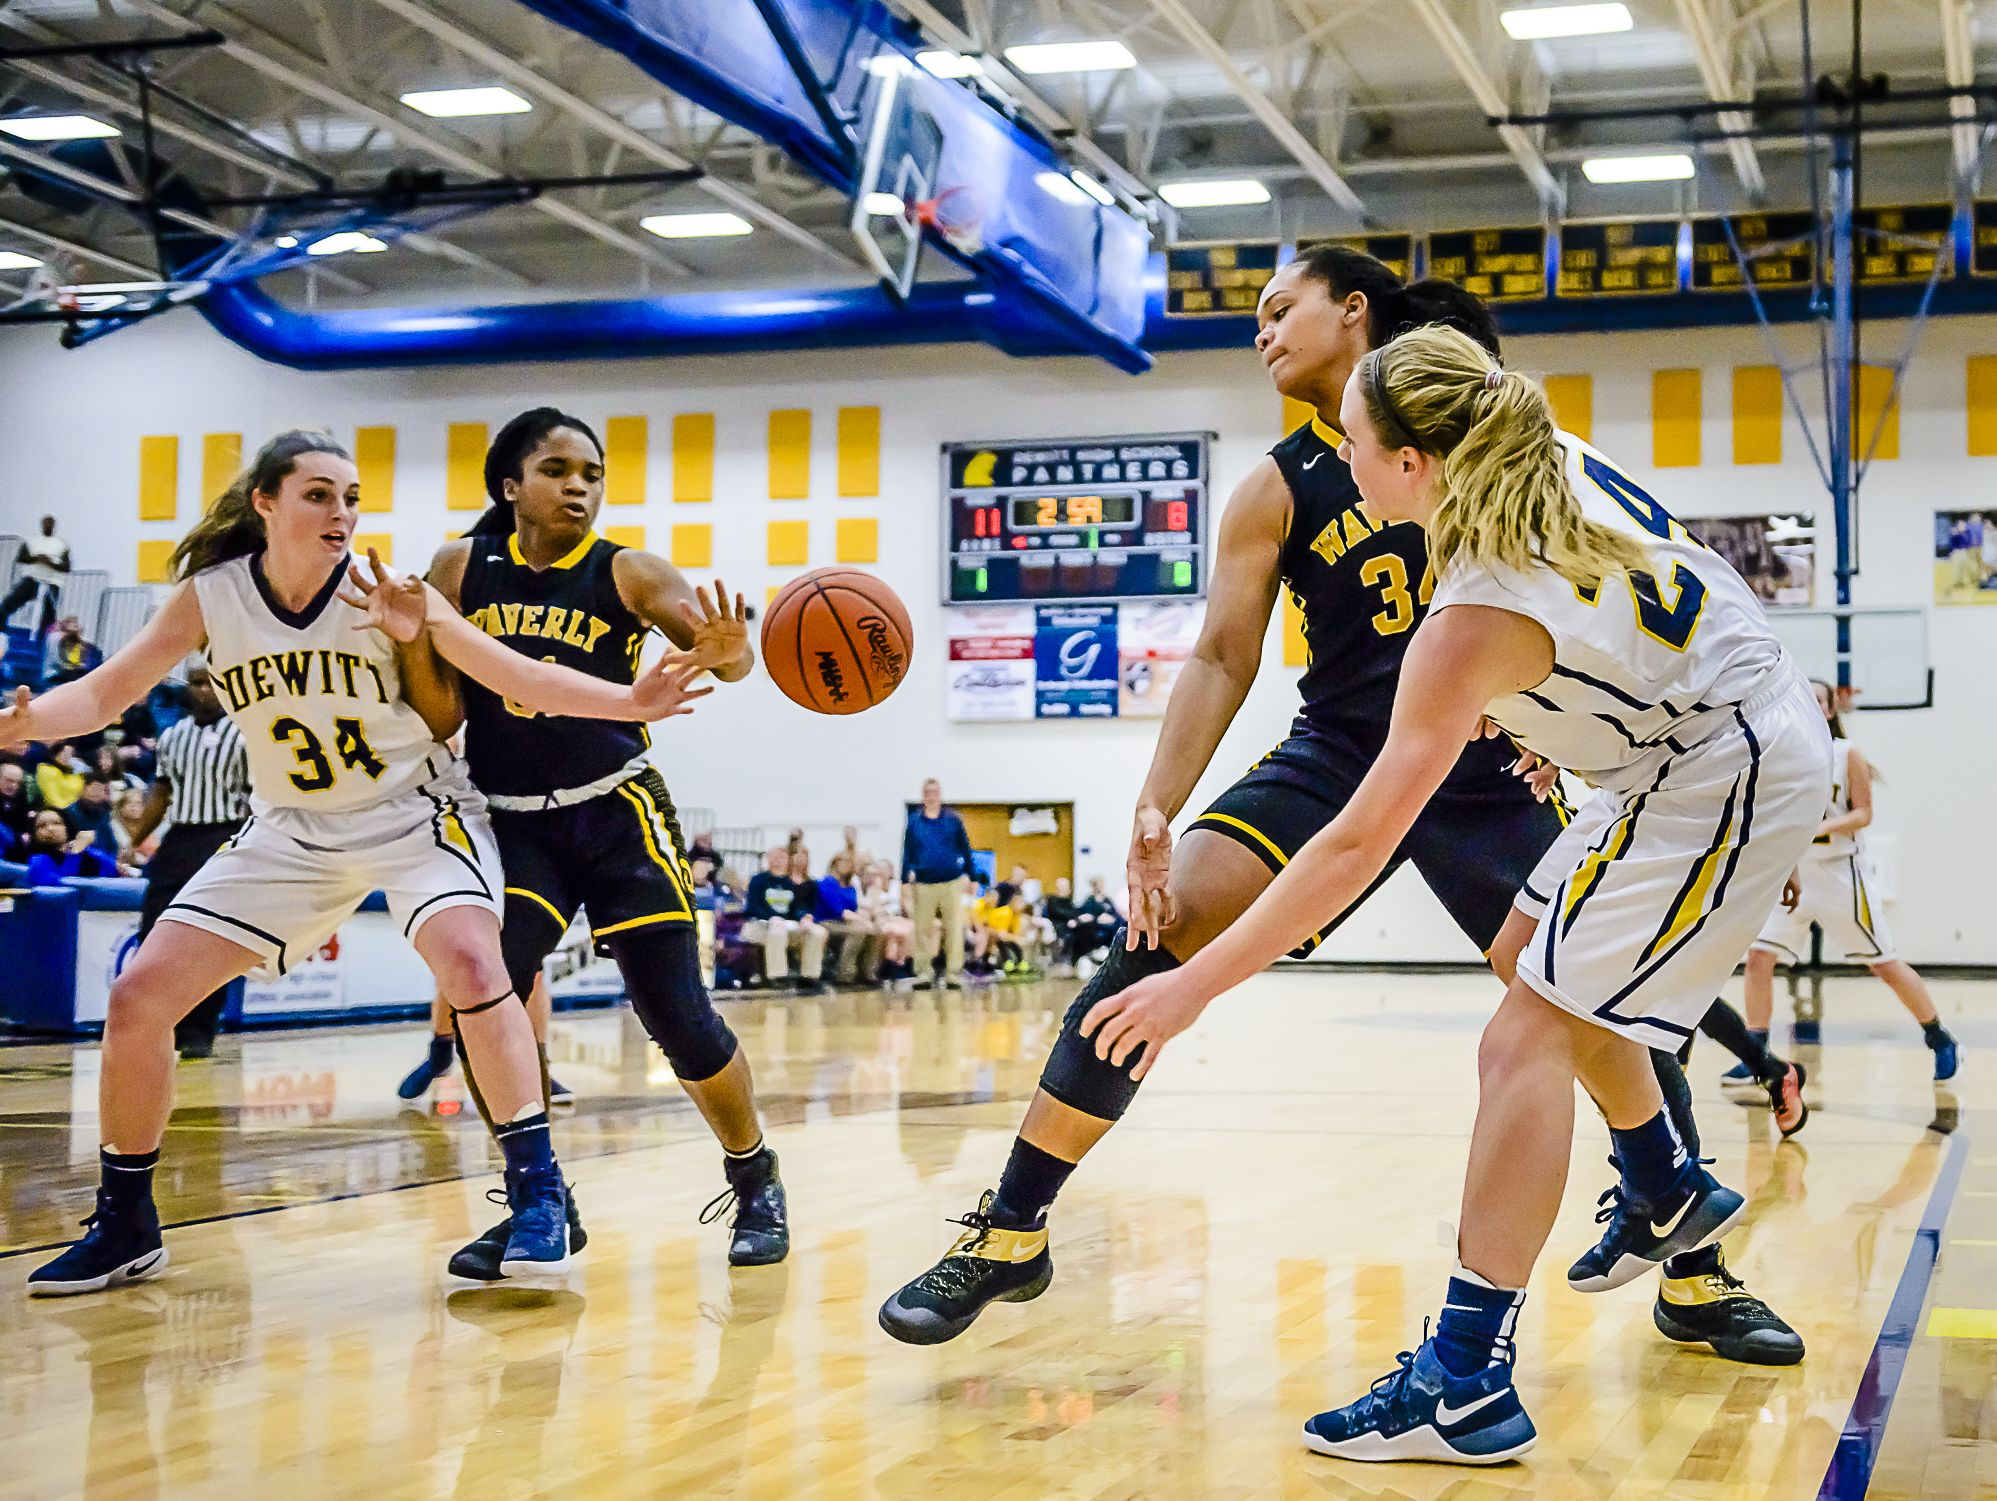 Annie MacIntosh ,right, of DeWitt passes around Malin Smith of Waverly to teammate Grace George ,34, in the paint during their game Friday January 6, 2017 in DeWitt. KEVIN W. FOWLER PHOTO